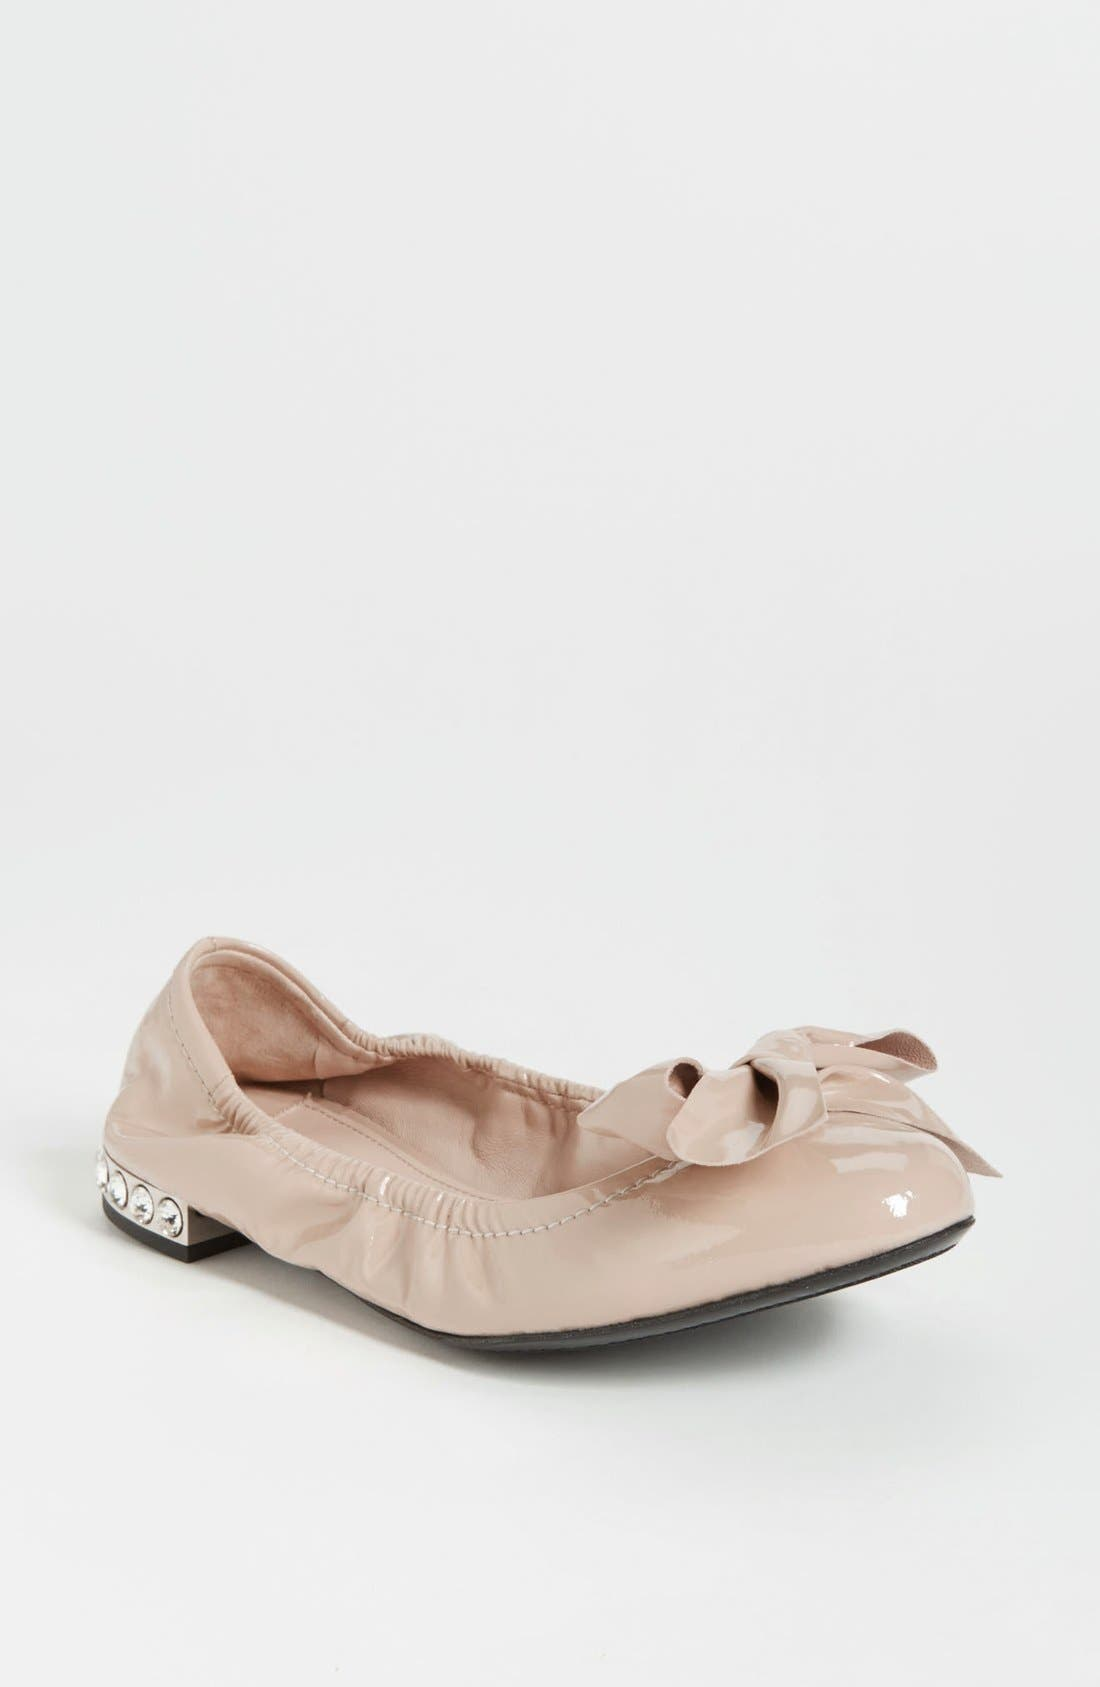 Alternate Image 1 Selected - Miu Miu Jeweled Heel Ballerina Flat